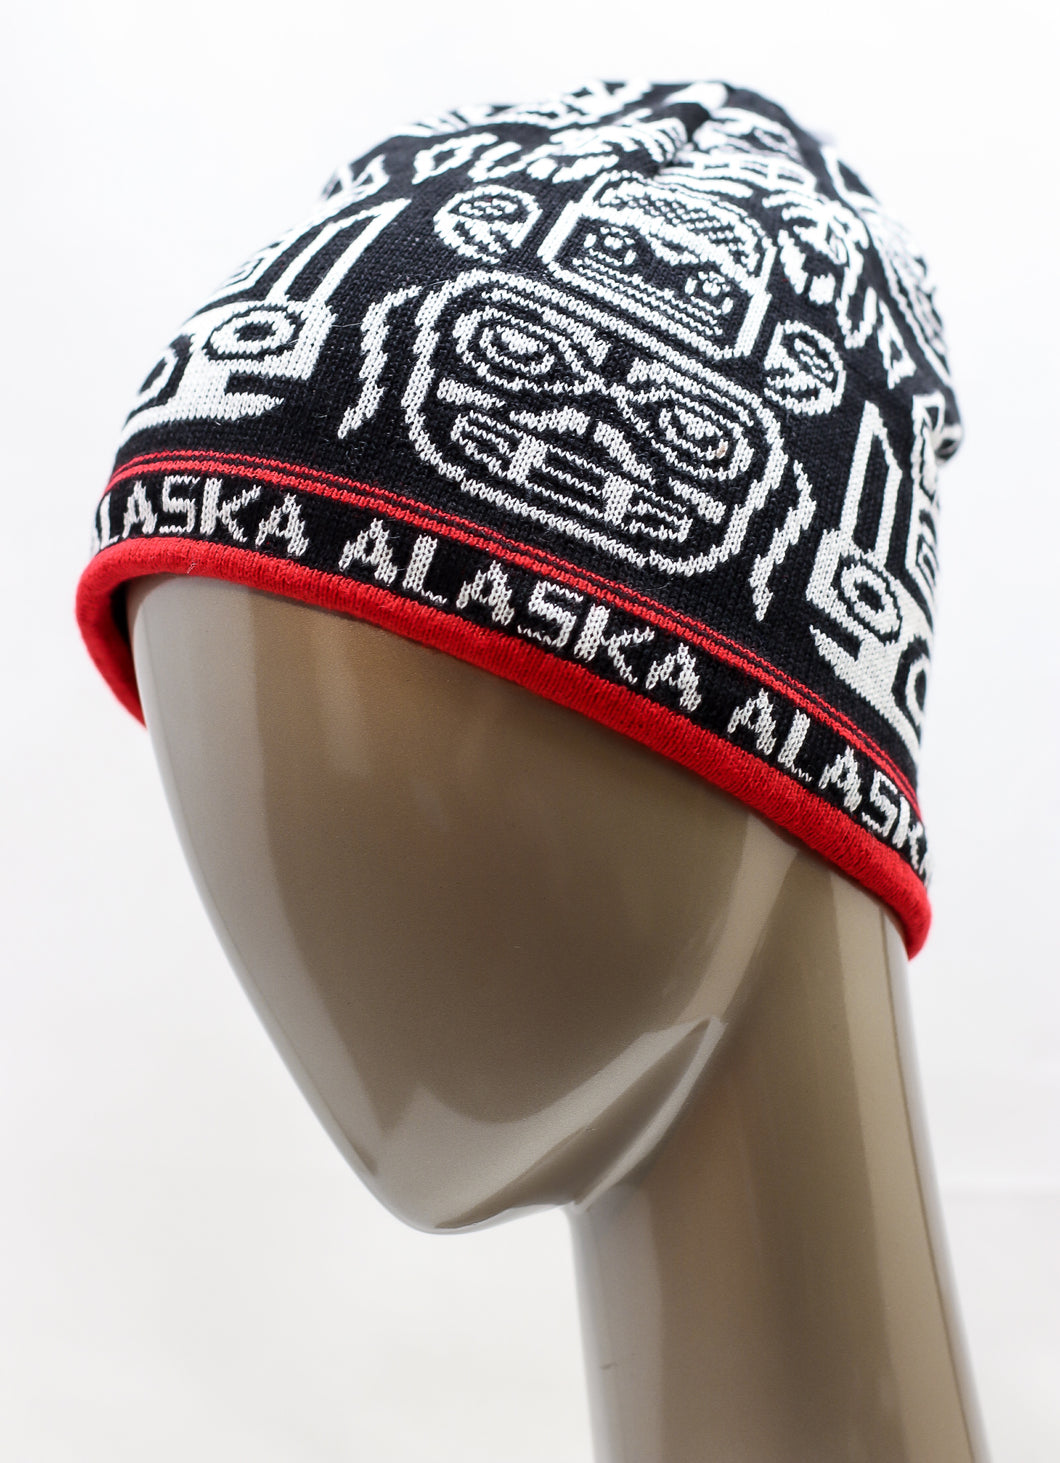 ALASKA TOTEMIC STYLED FLEECE-LINED BEANIE WITH RED STRIPES